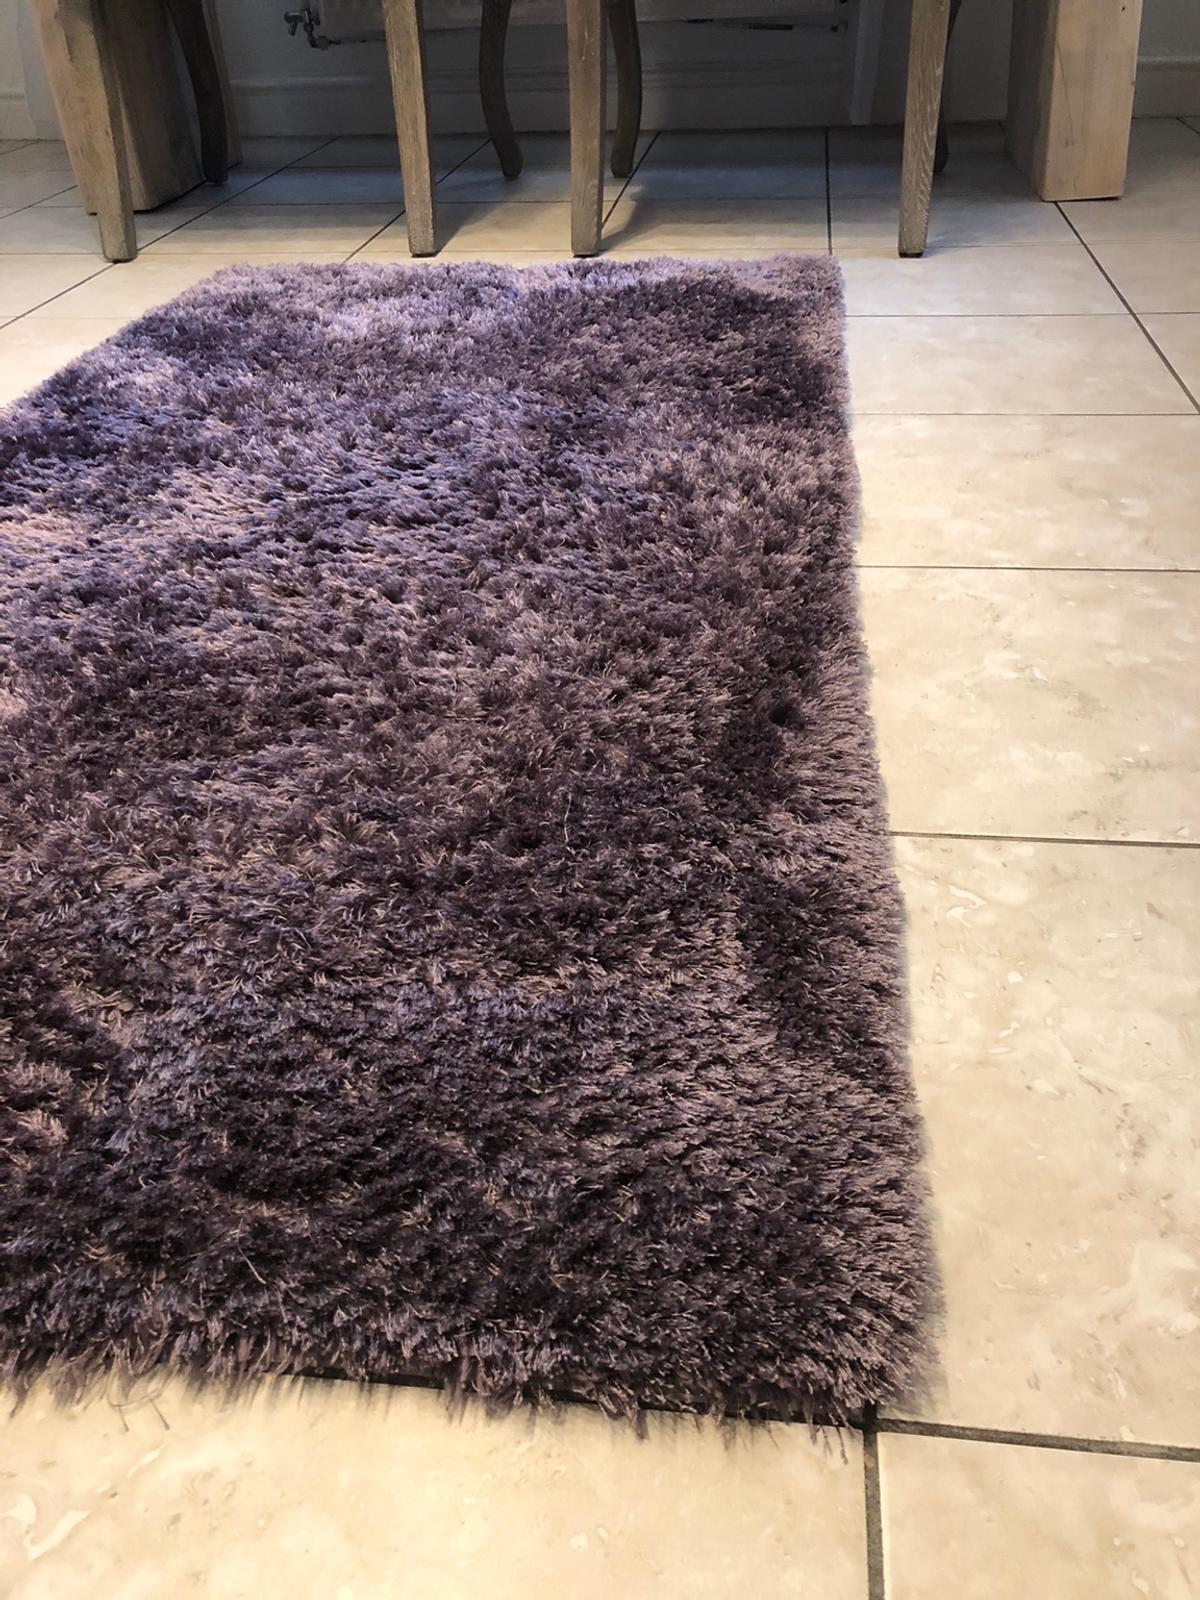 Lovely rug purchased from Dunelm Mill 80x150cm In excellent condition